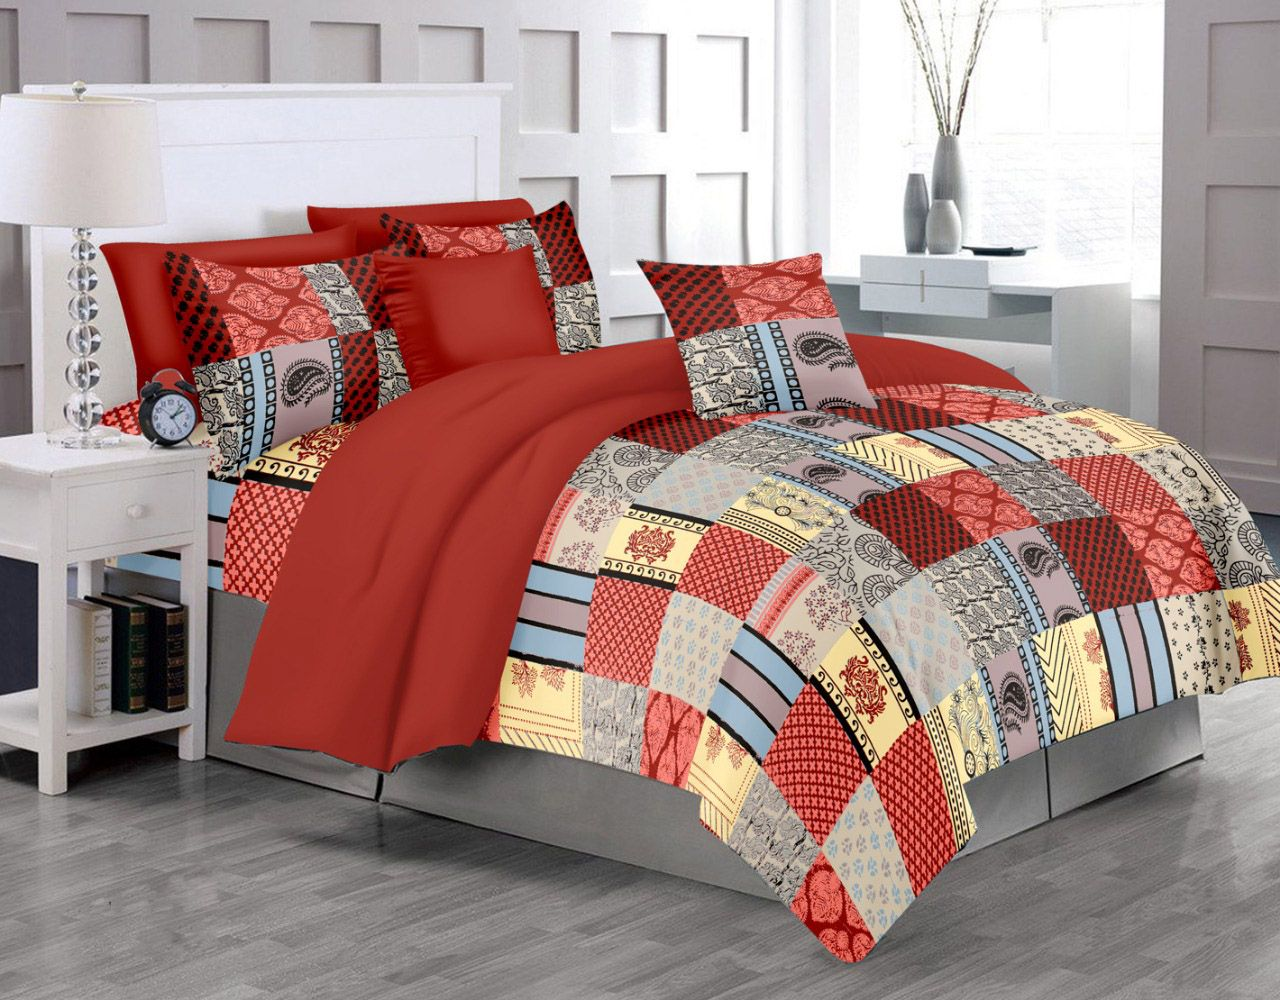 The export world is bed linen suppliers in India in 2020